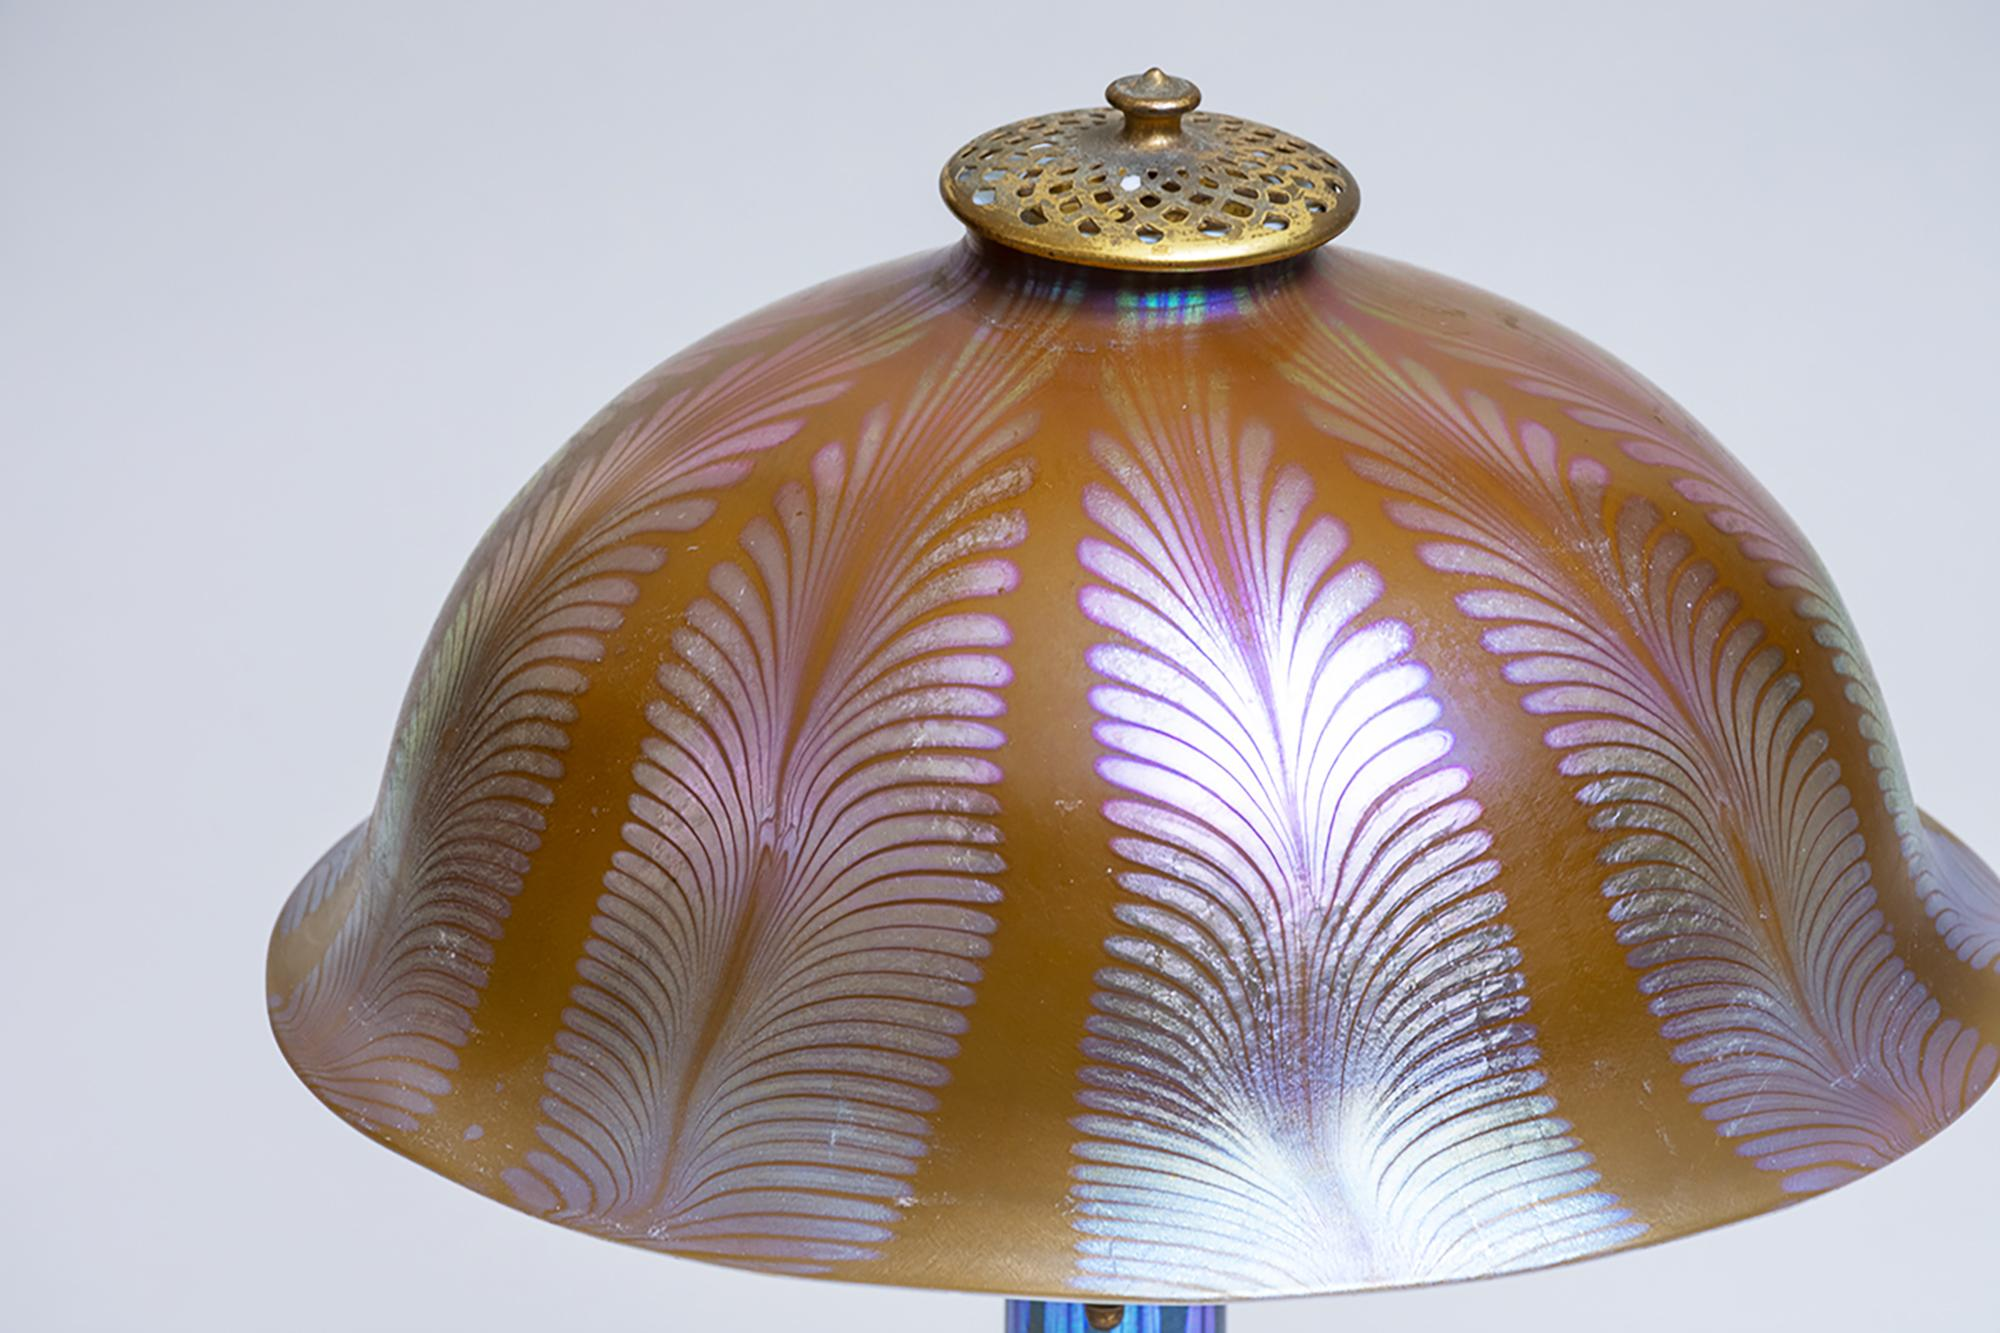 Tiffany Studios Favrile Glass Lamp 3